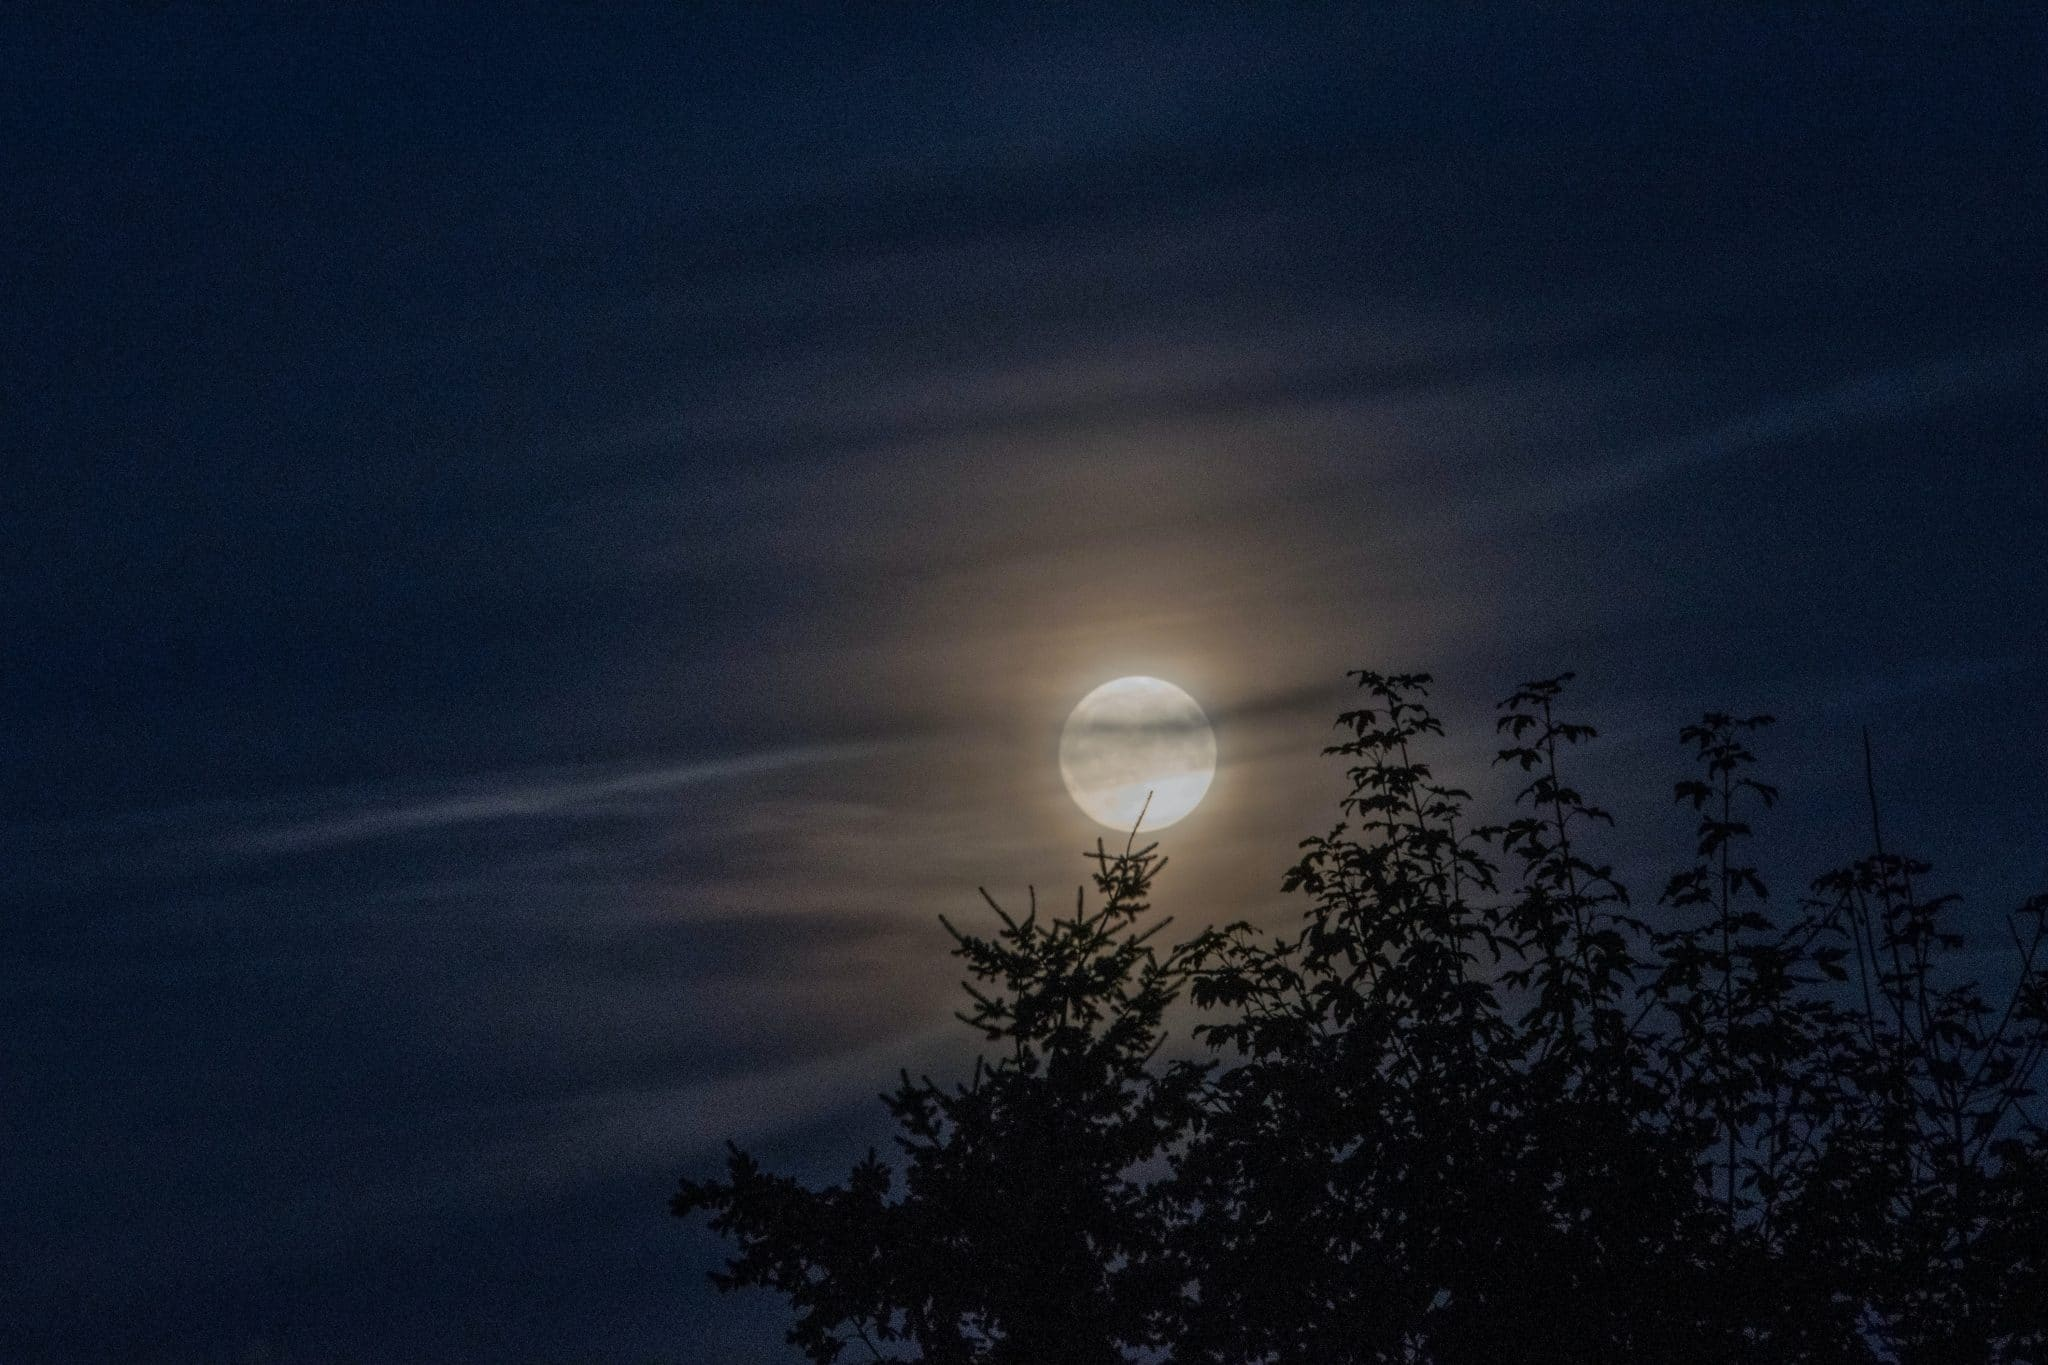 Full moon covered by hazy clouds